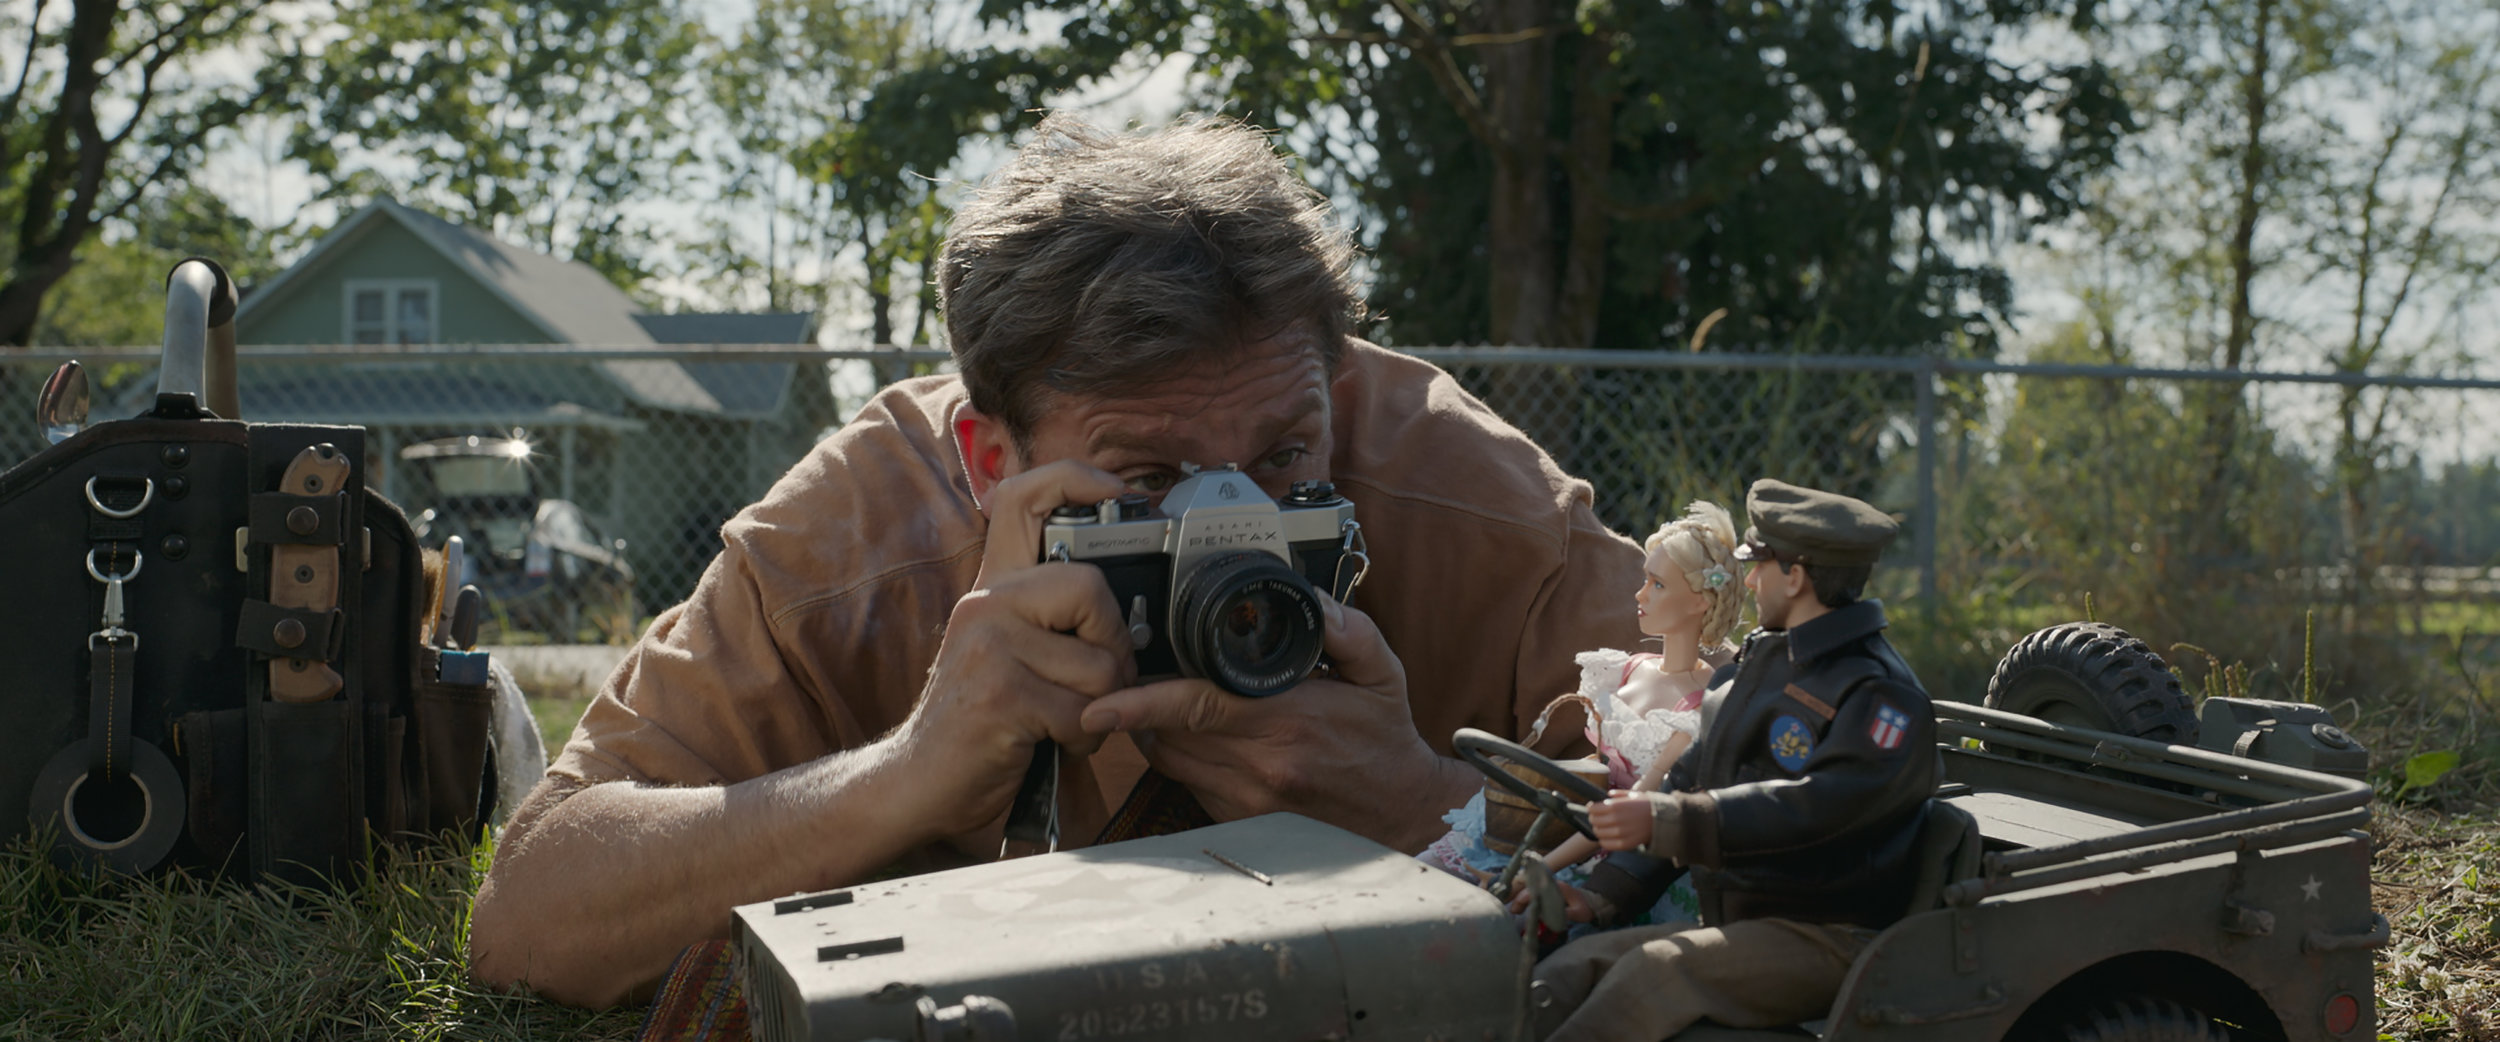 "Mark Hogancamp (Steve Carell) photographs the figures in his installation, a scale model of a Belgian town in World War II, in the drama ""Welcome to Marwen."" (Photo courtesy Universal Pictures/Dreamworks Pictures)"